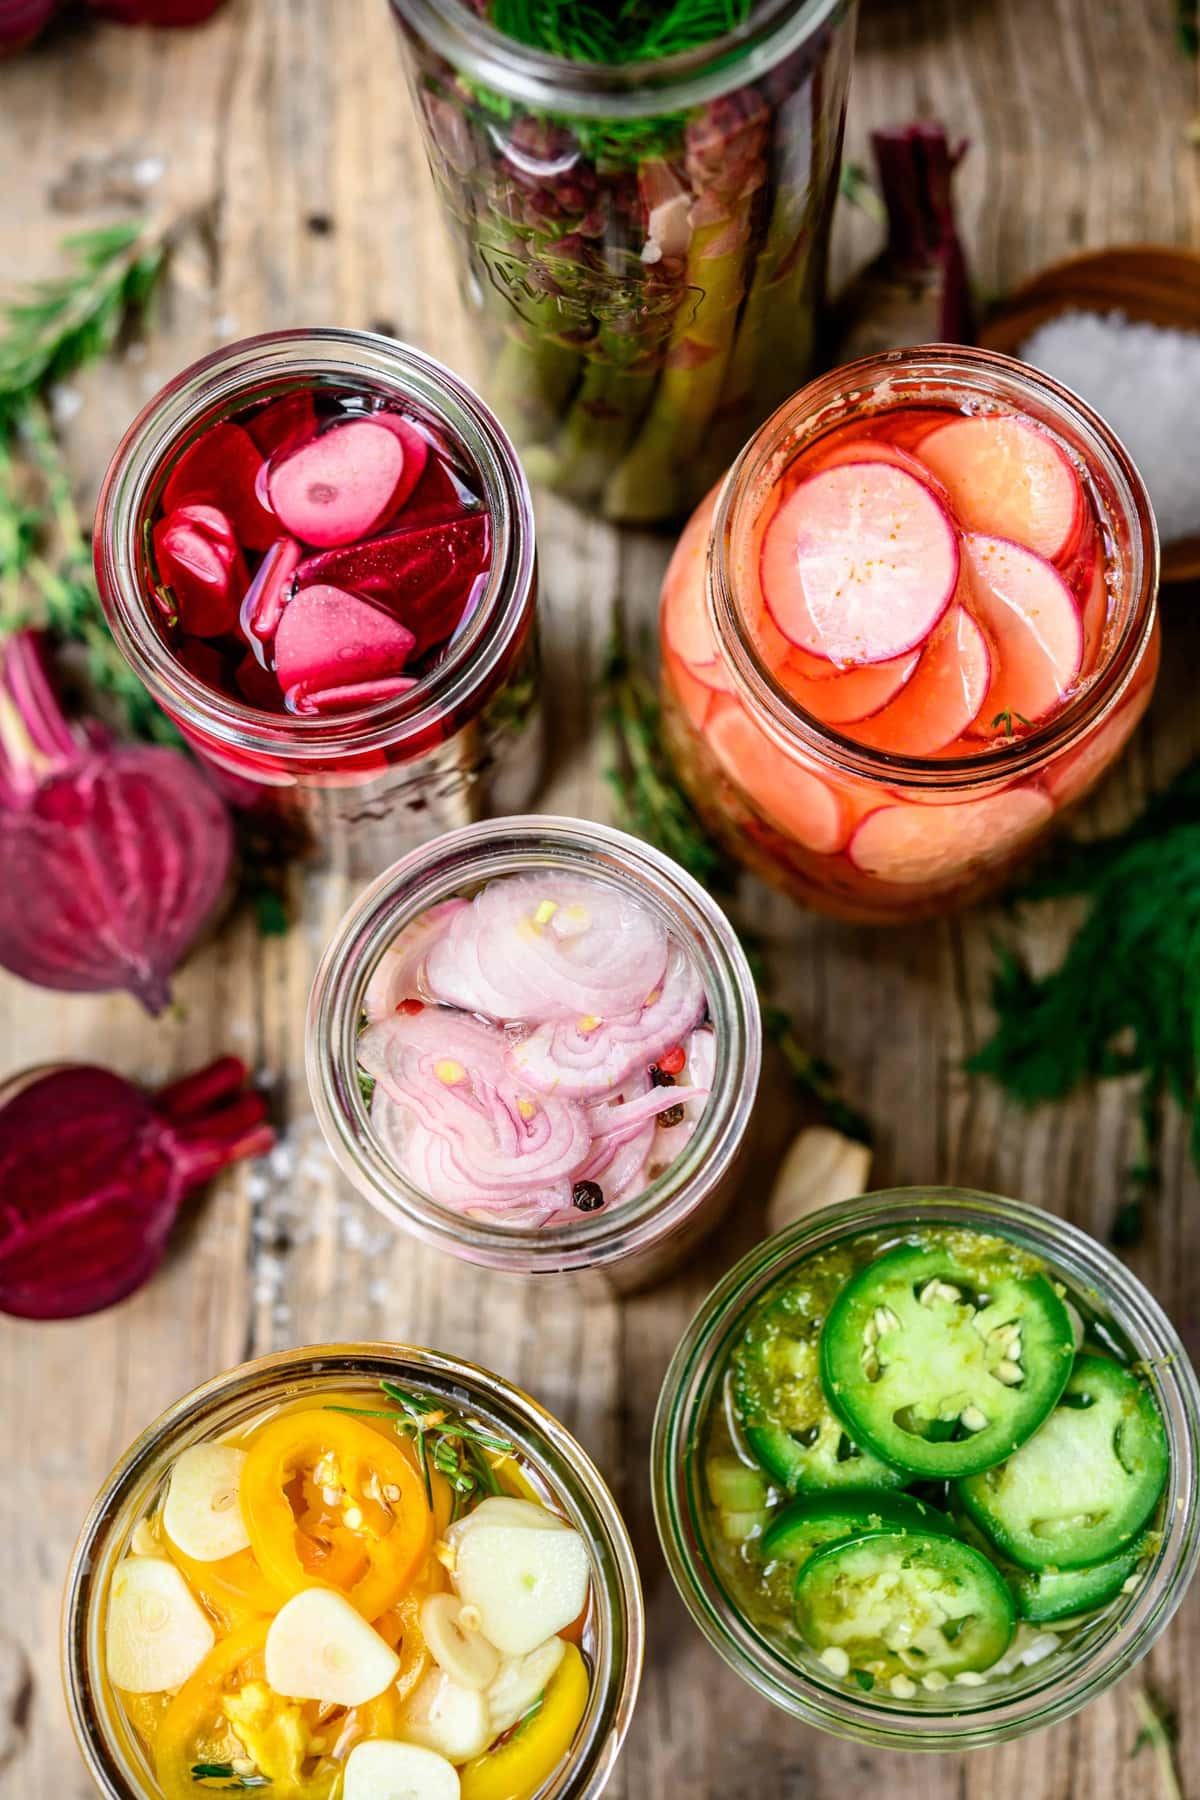 Overhead view of colorful pickled vegetables in glass jars on wood tables